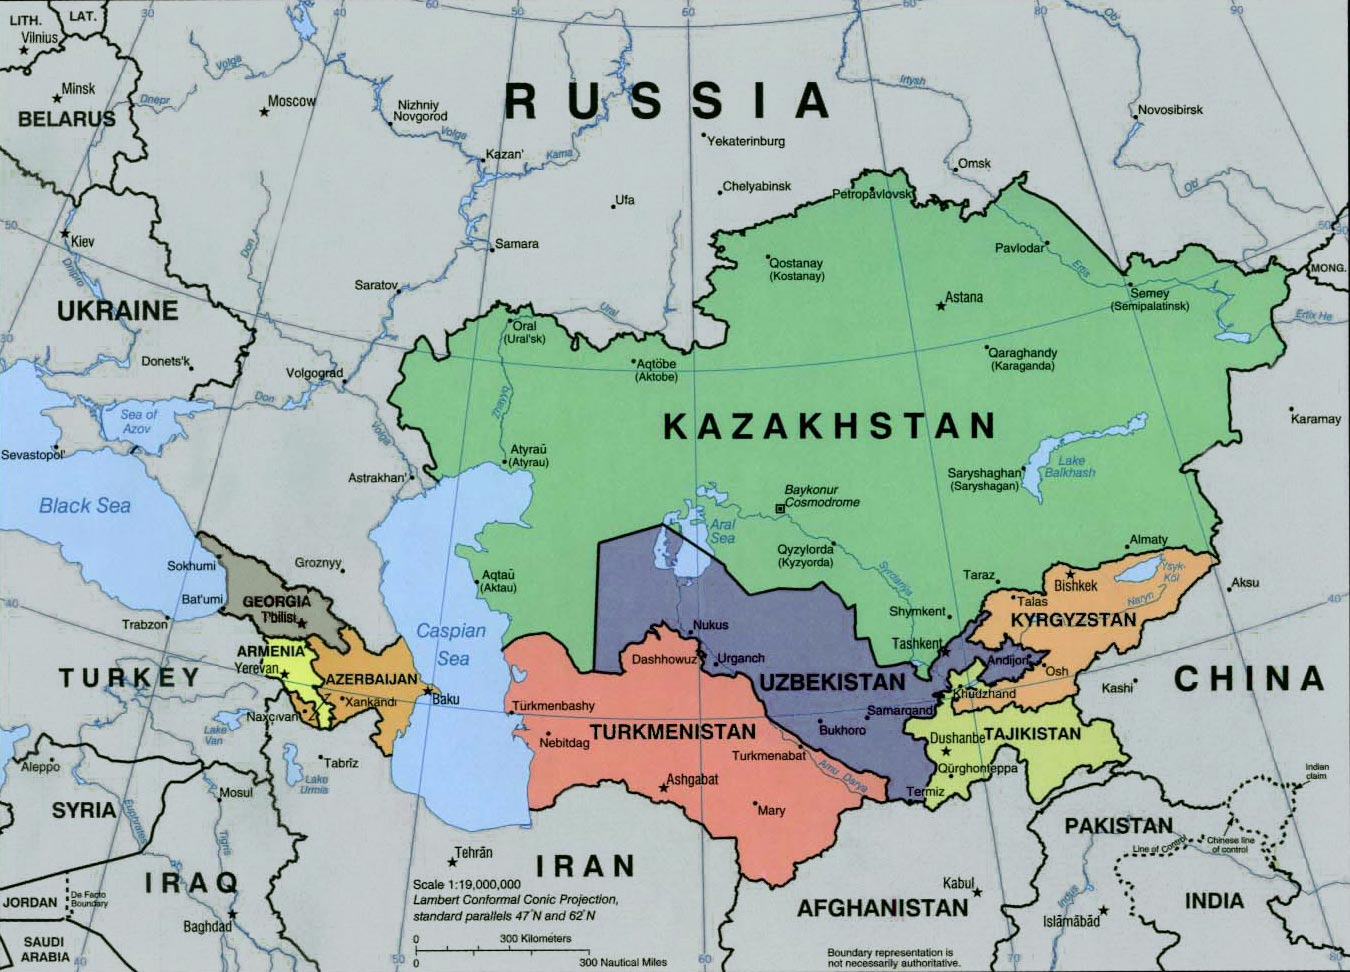 Central asia map caspian sea caucasus and central asia continents maps gumiabroncs Images